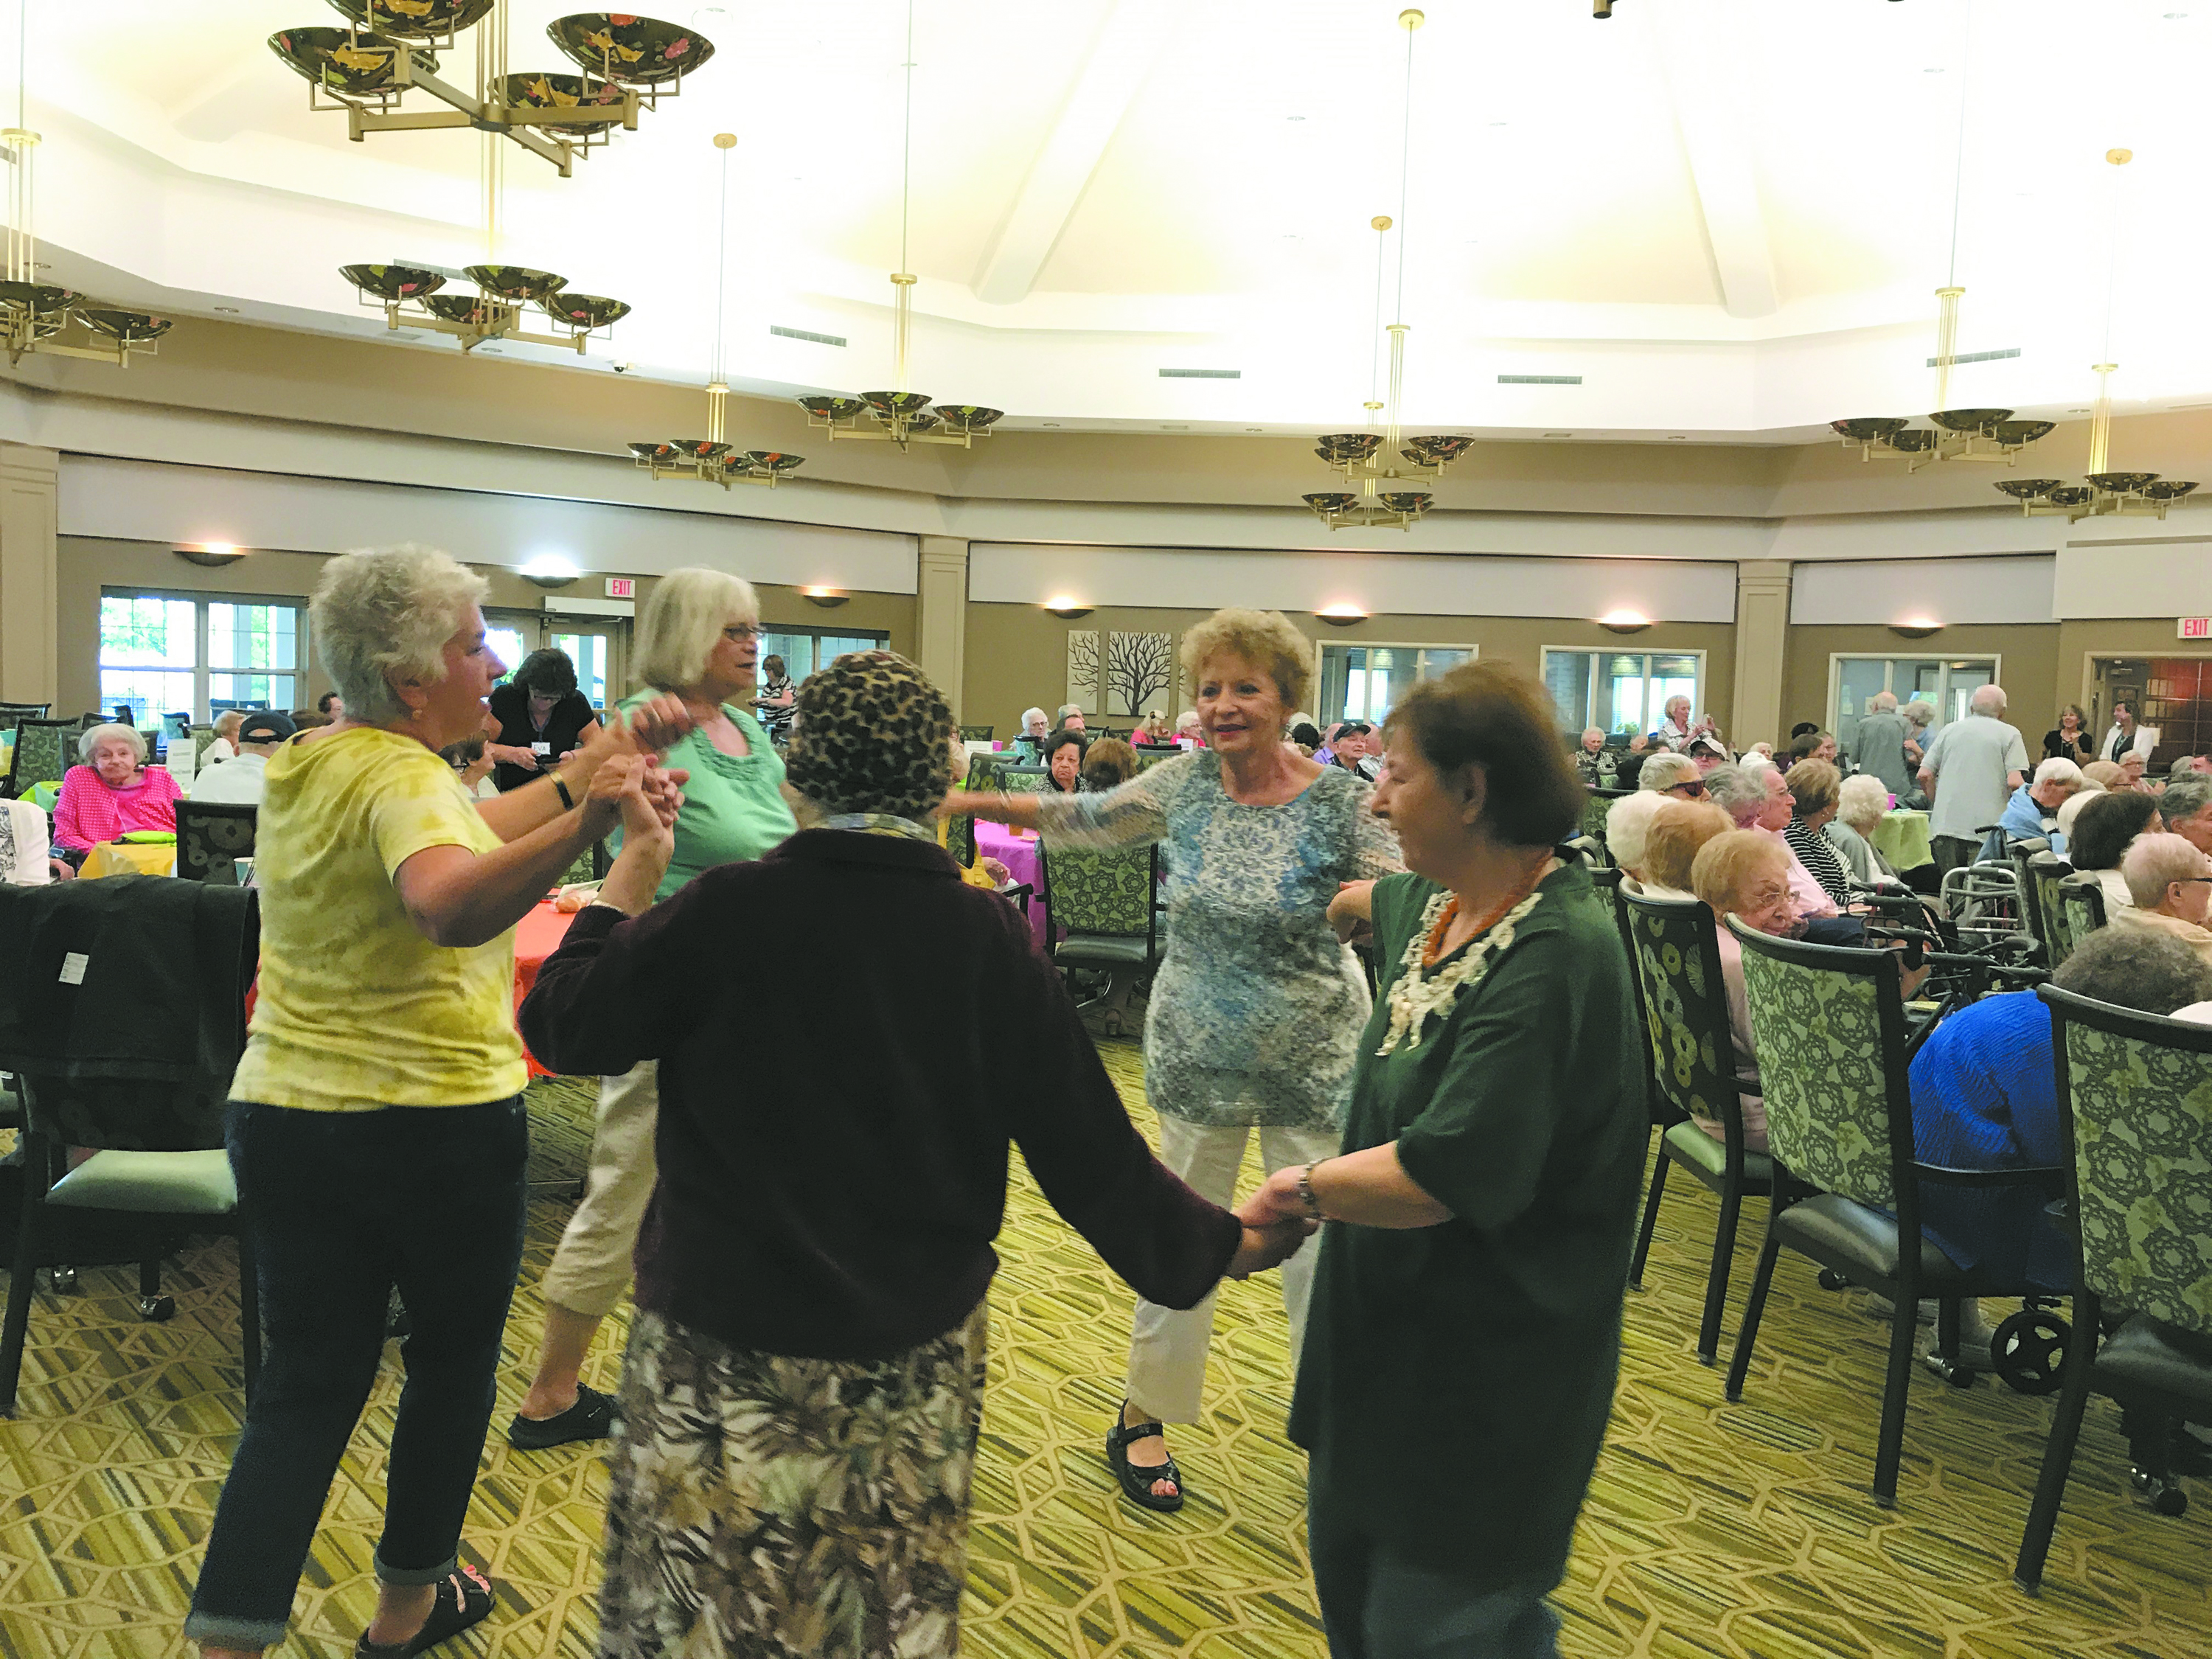 Survivors and second-generation family members dance at a Café Europa event hosted by the Program for Holocaust Survivors and Families